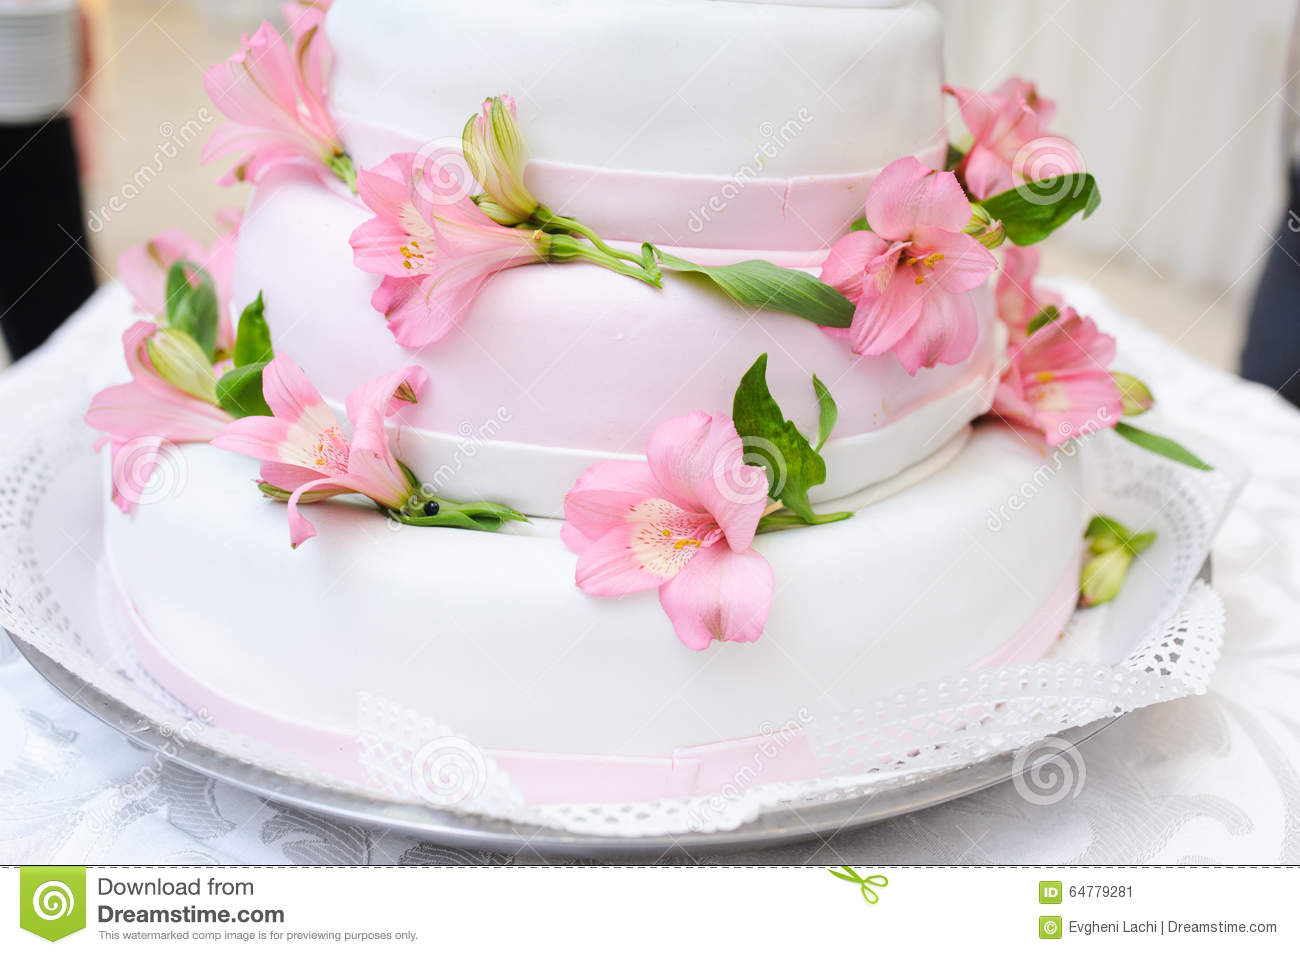 Wedding Cake Stock Image Image Of Flowers Pretty Table 64779281